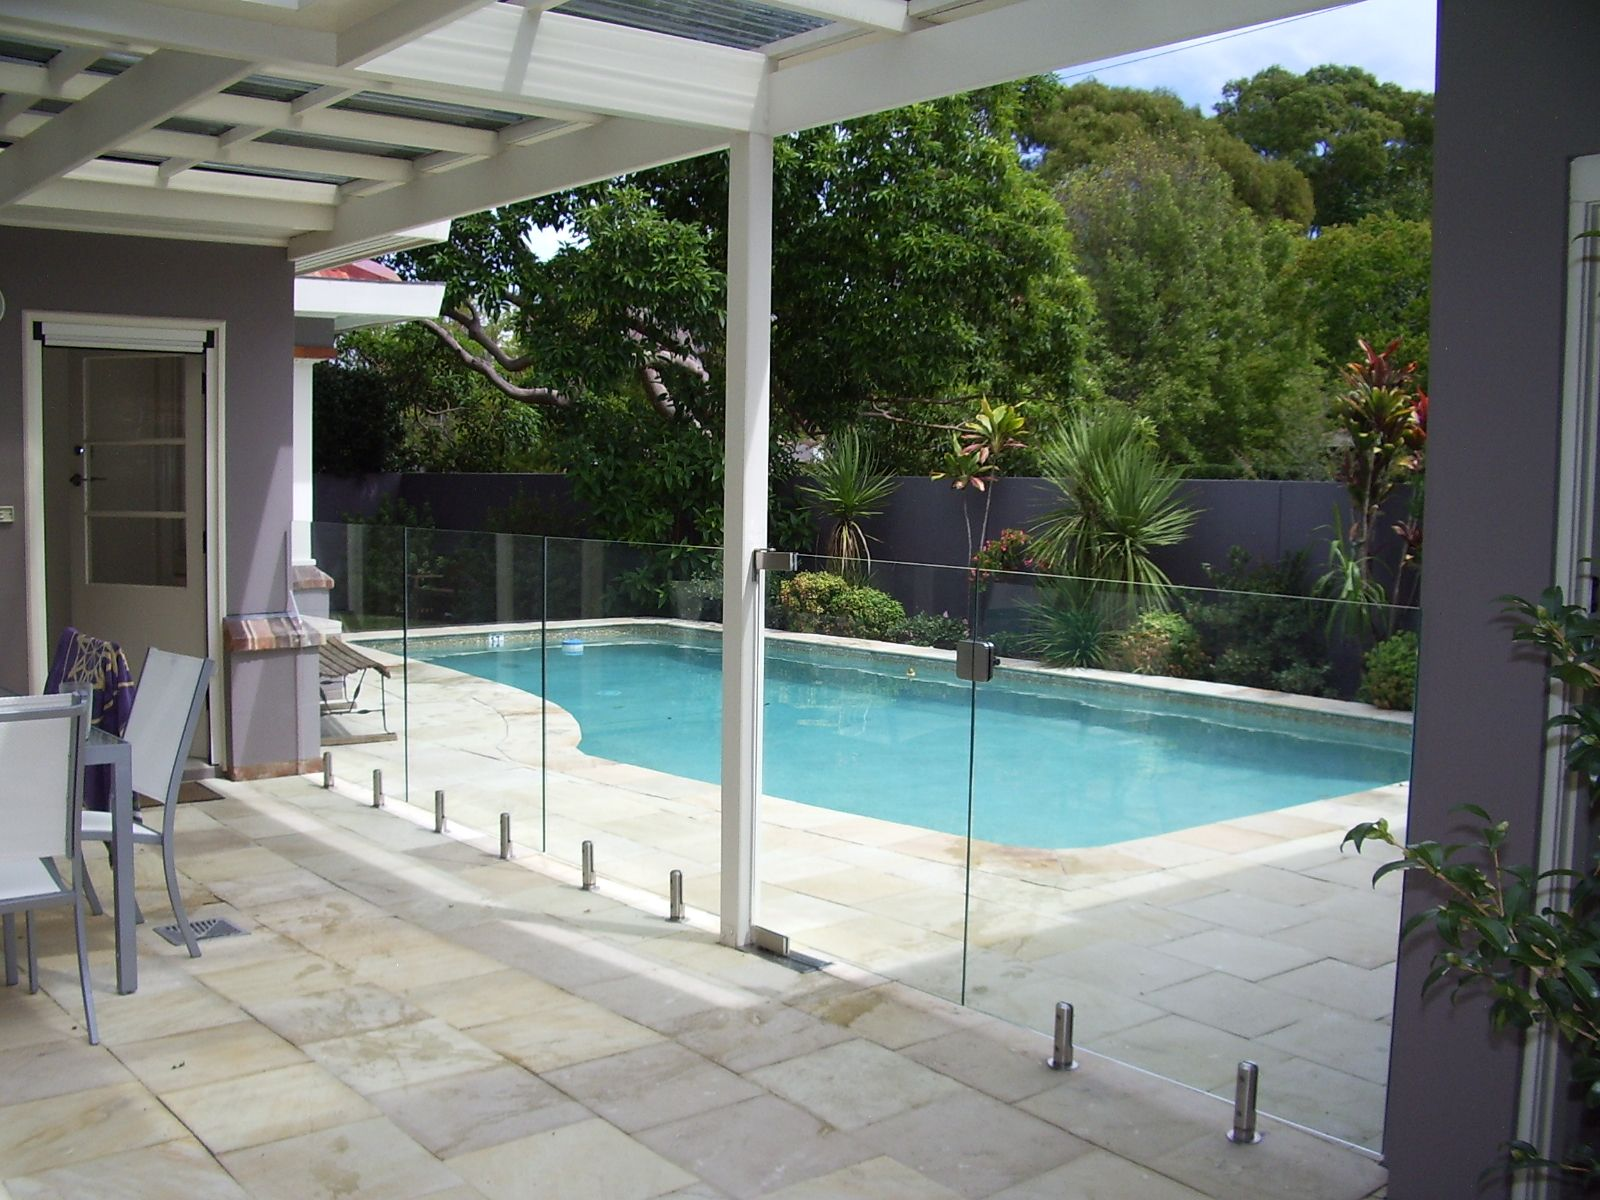 Make your swimming pool safe and secure with glass fencing make your swimming pool safe and secure with glass fencing baanklon Images